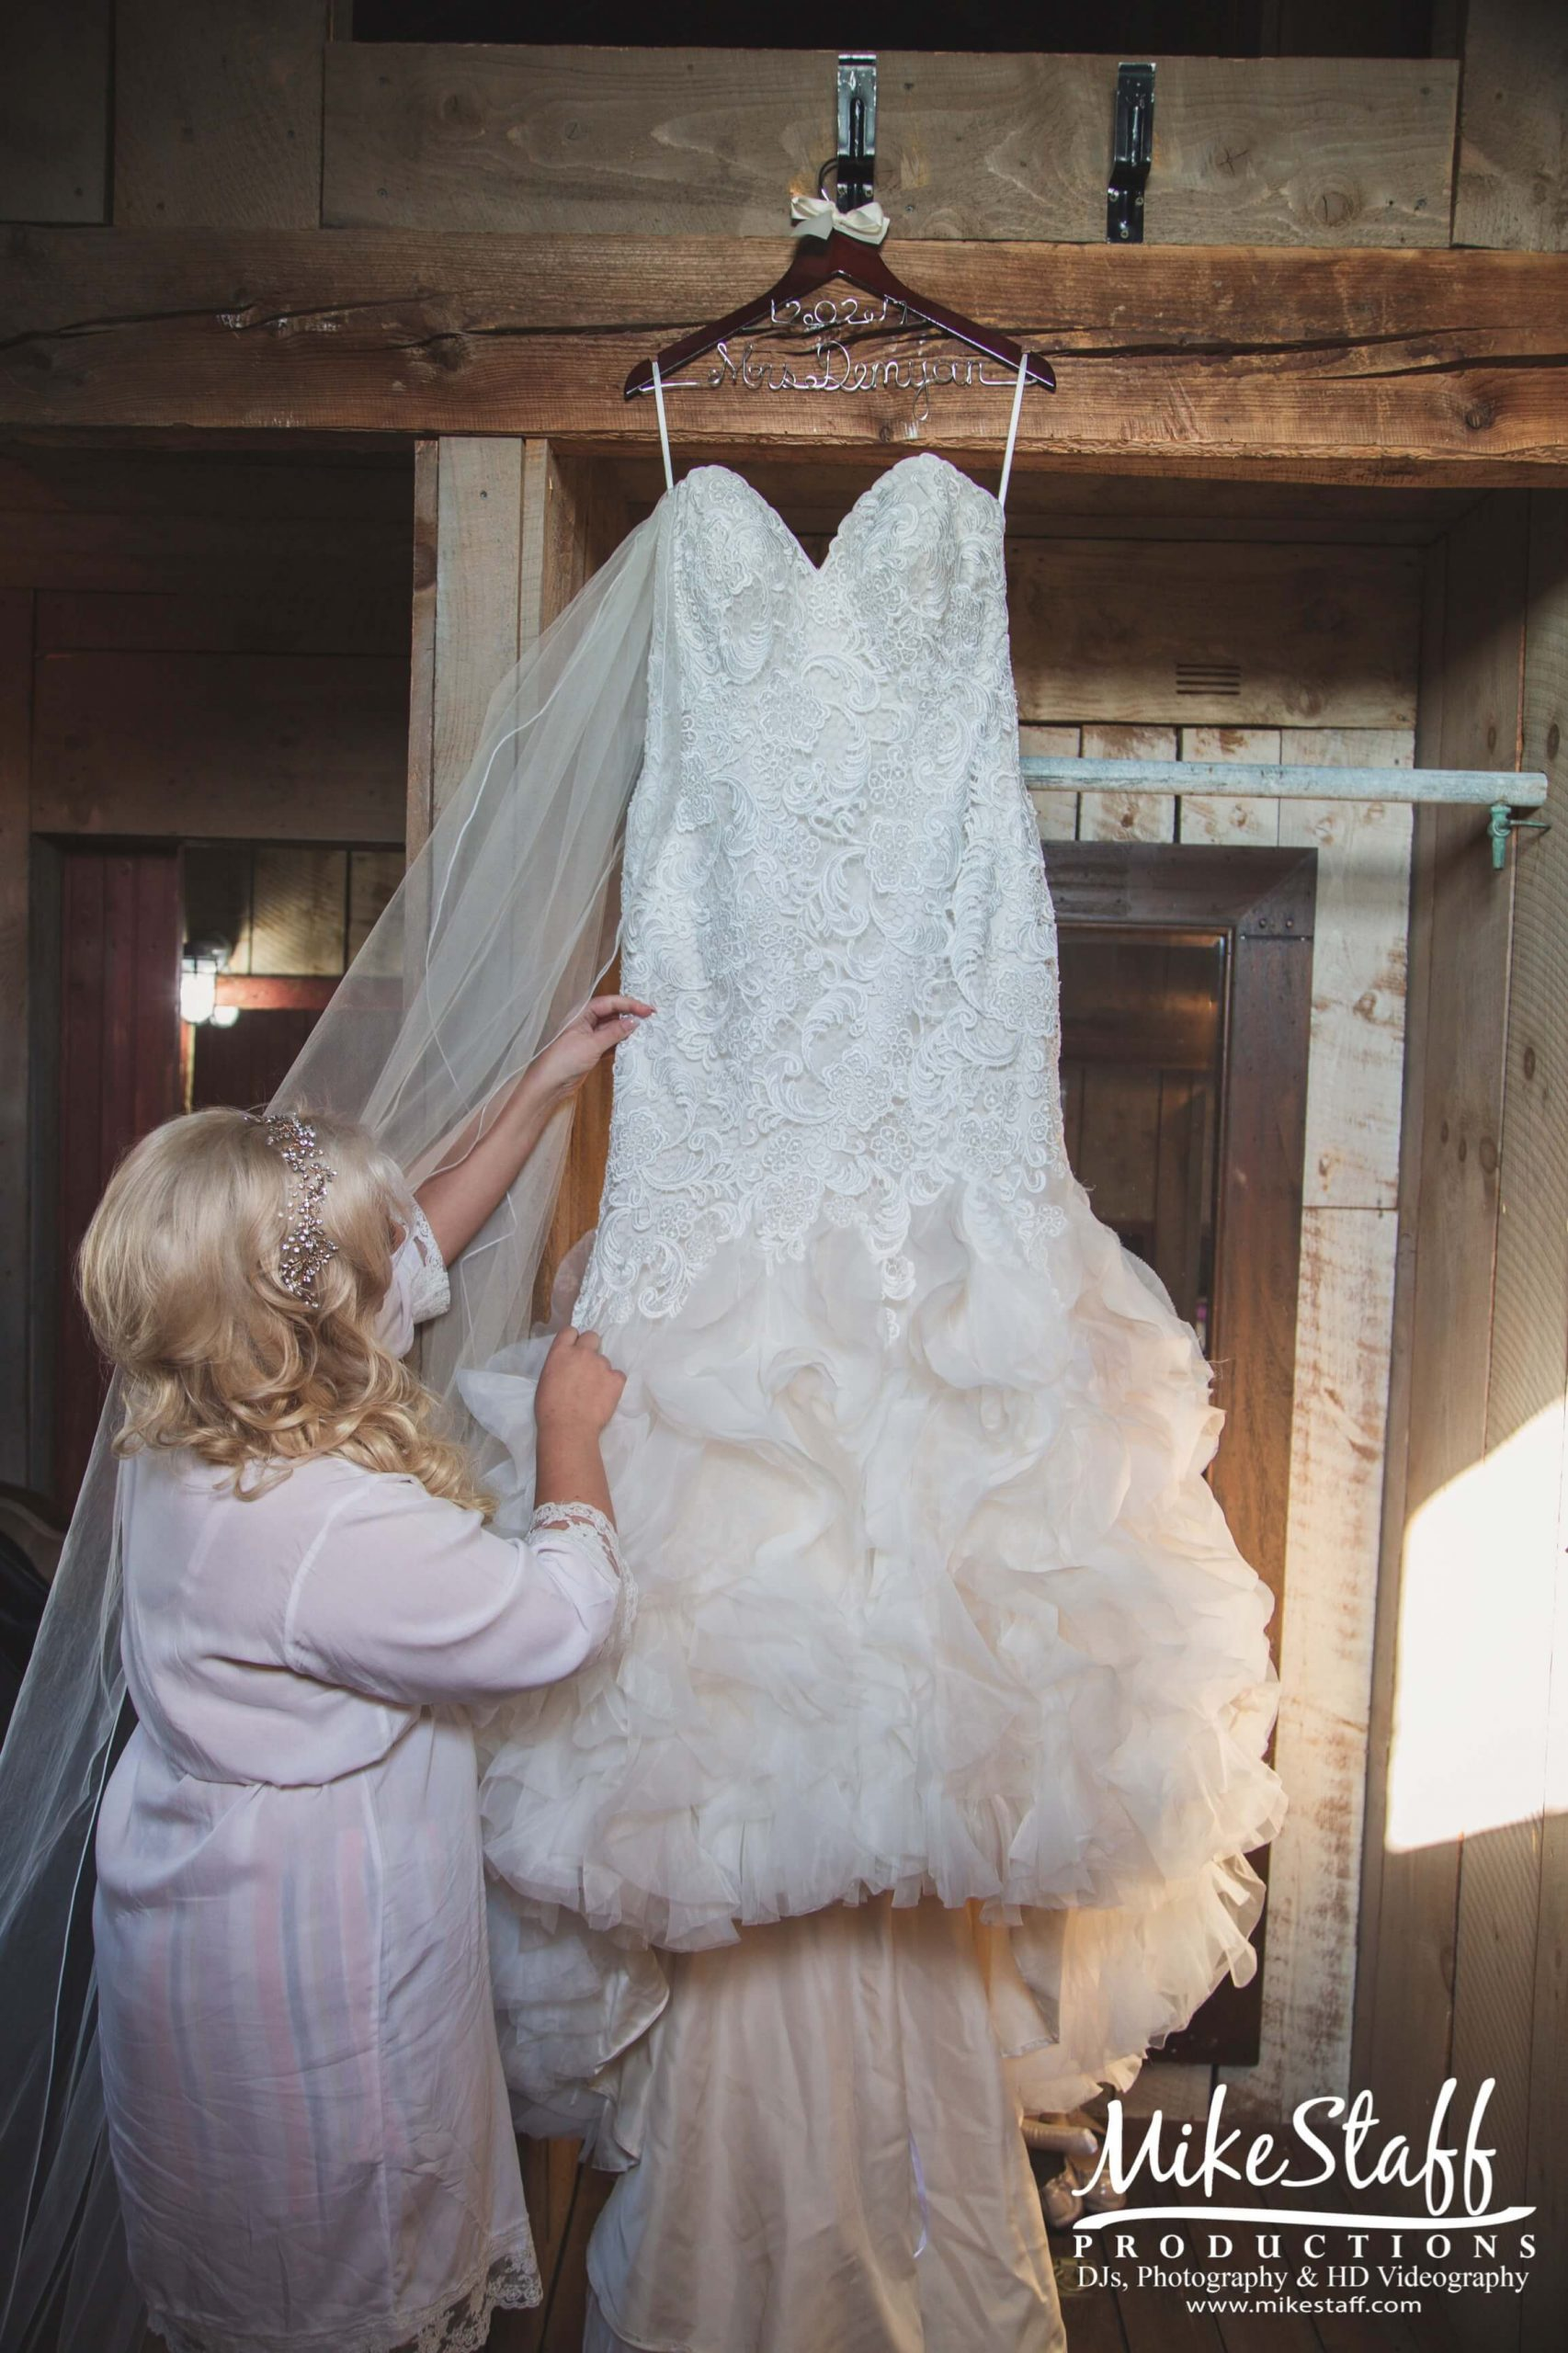 bride looking at dress hanging in barn